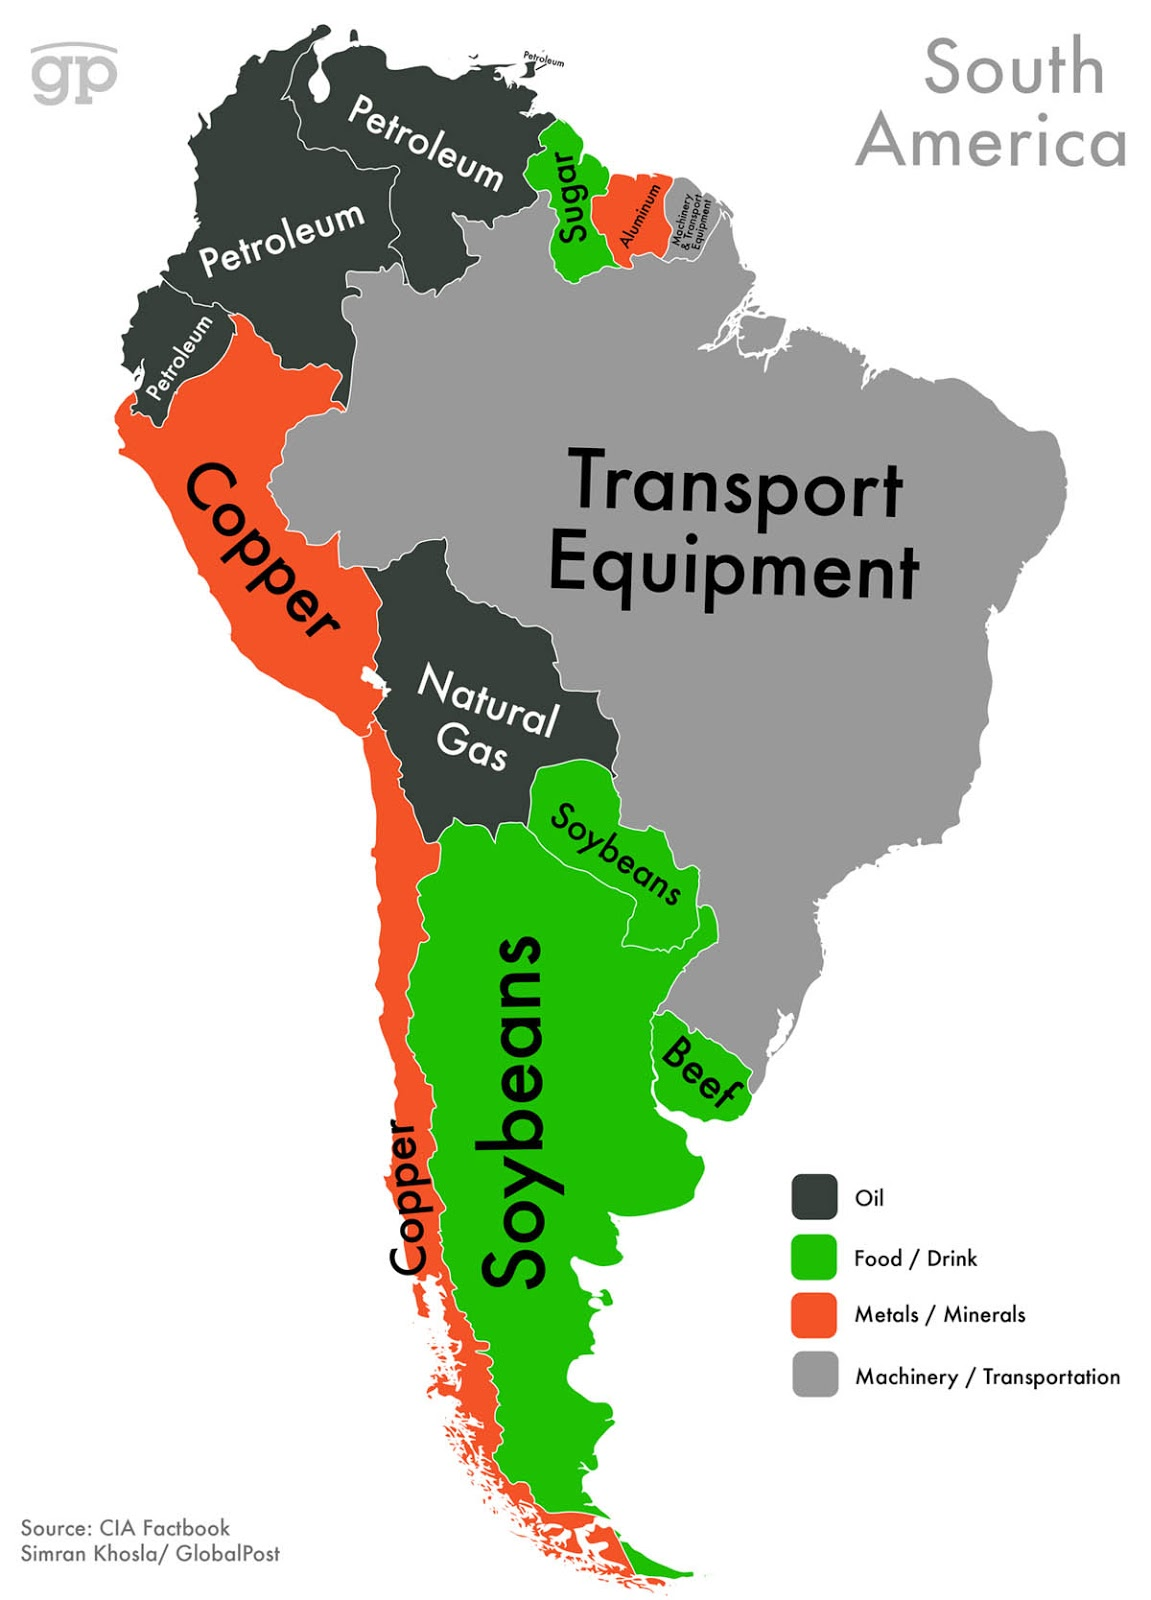 The Most Valuable Export of South American Countries